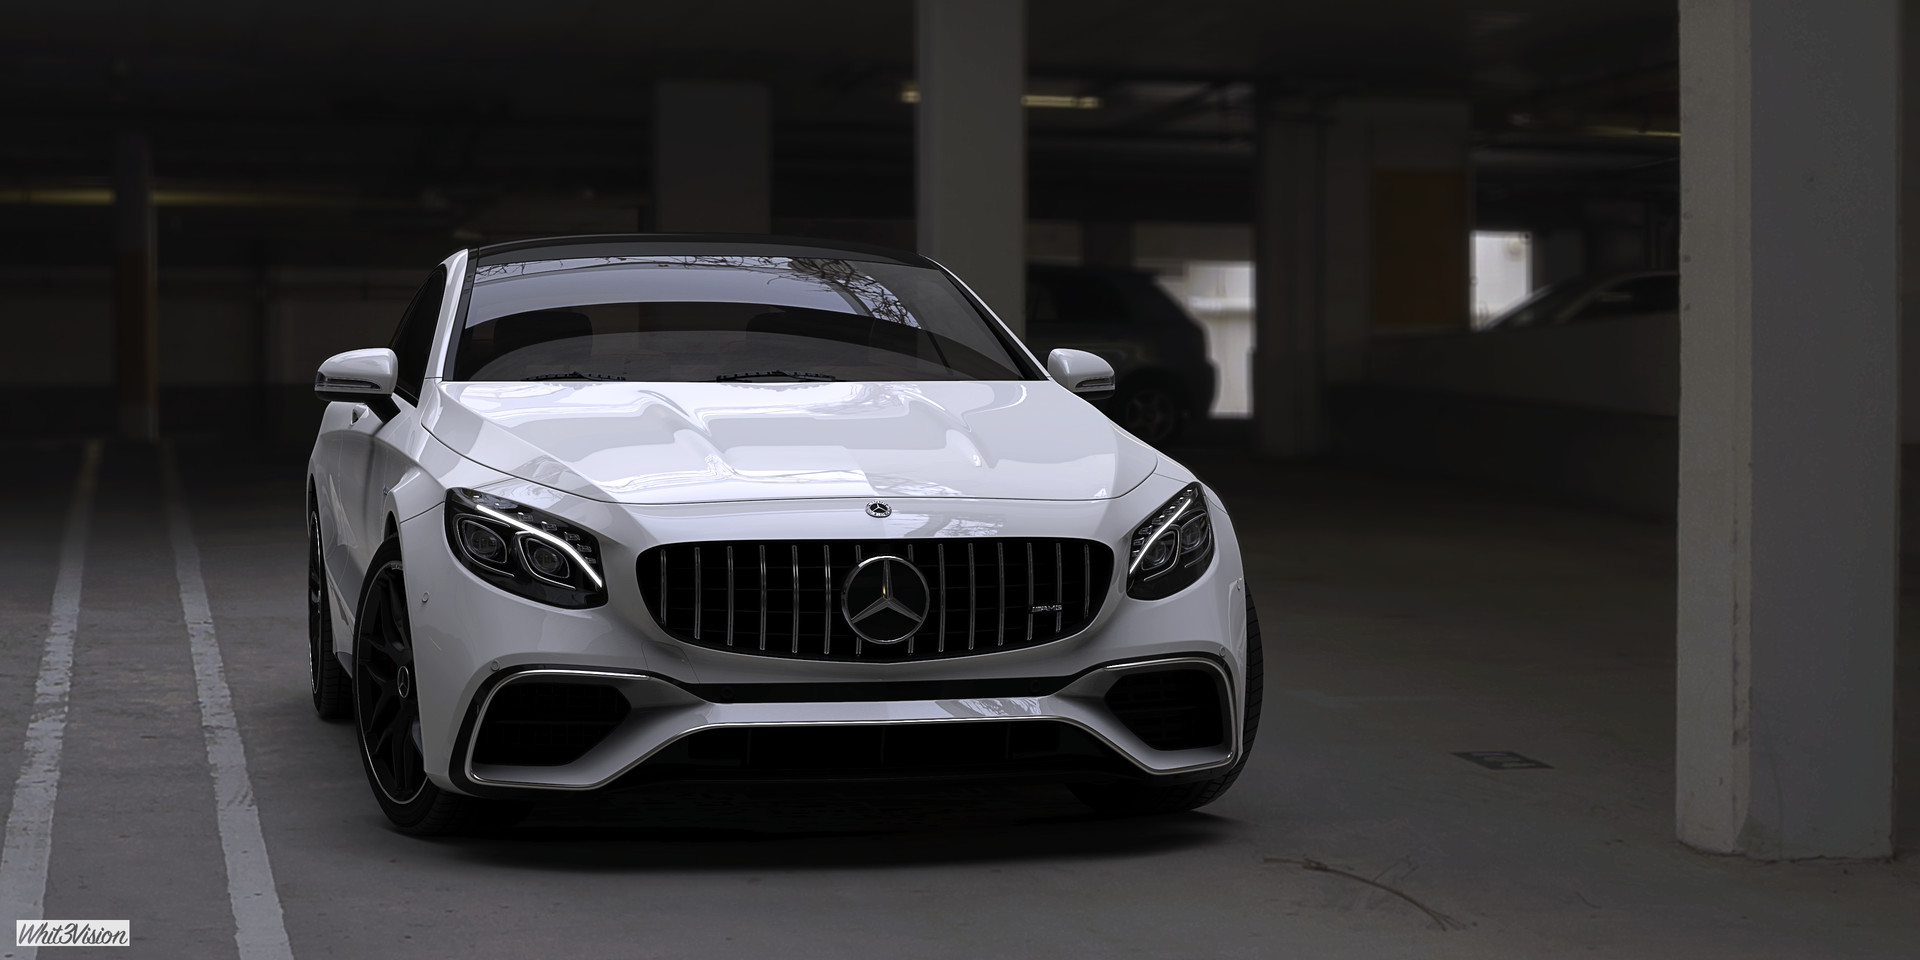 S63 Amg Coupe >> Artstation Mercedes Benz S63 Amg Coupe 2018 Vladimir